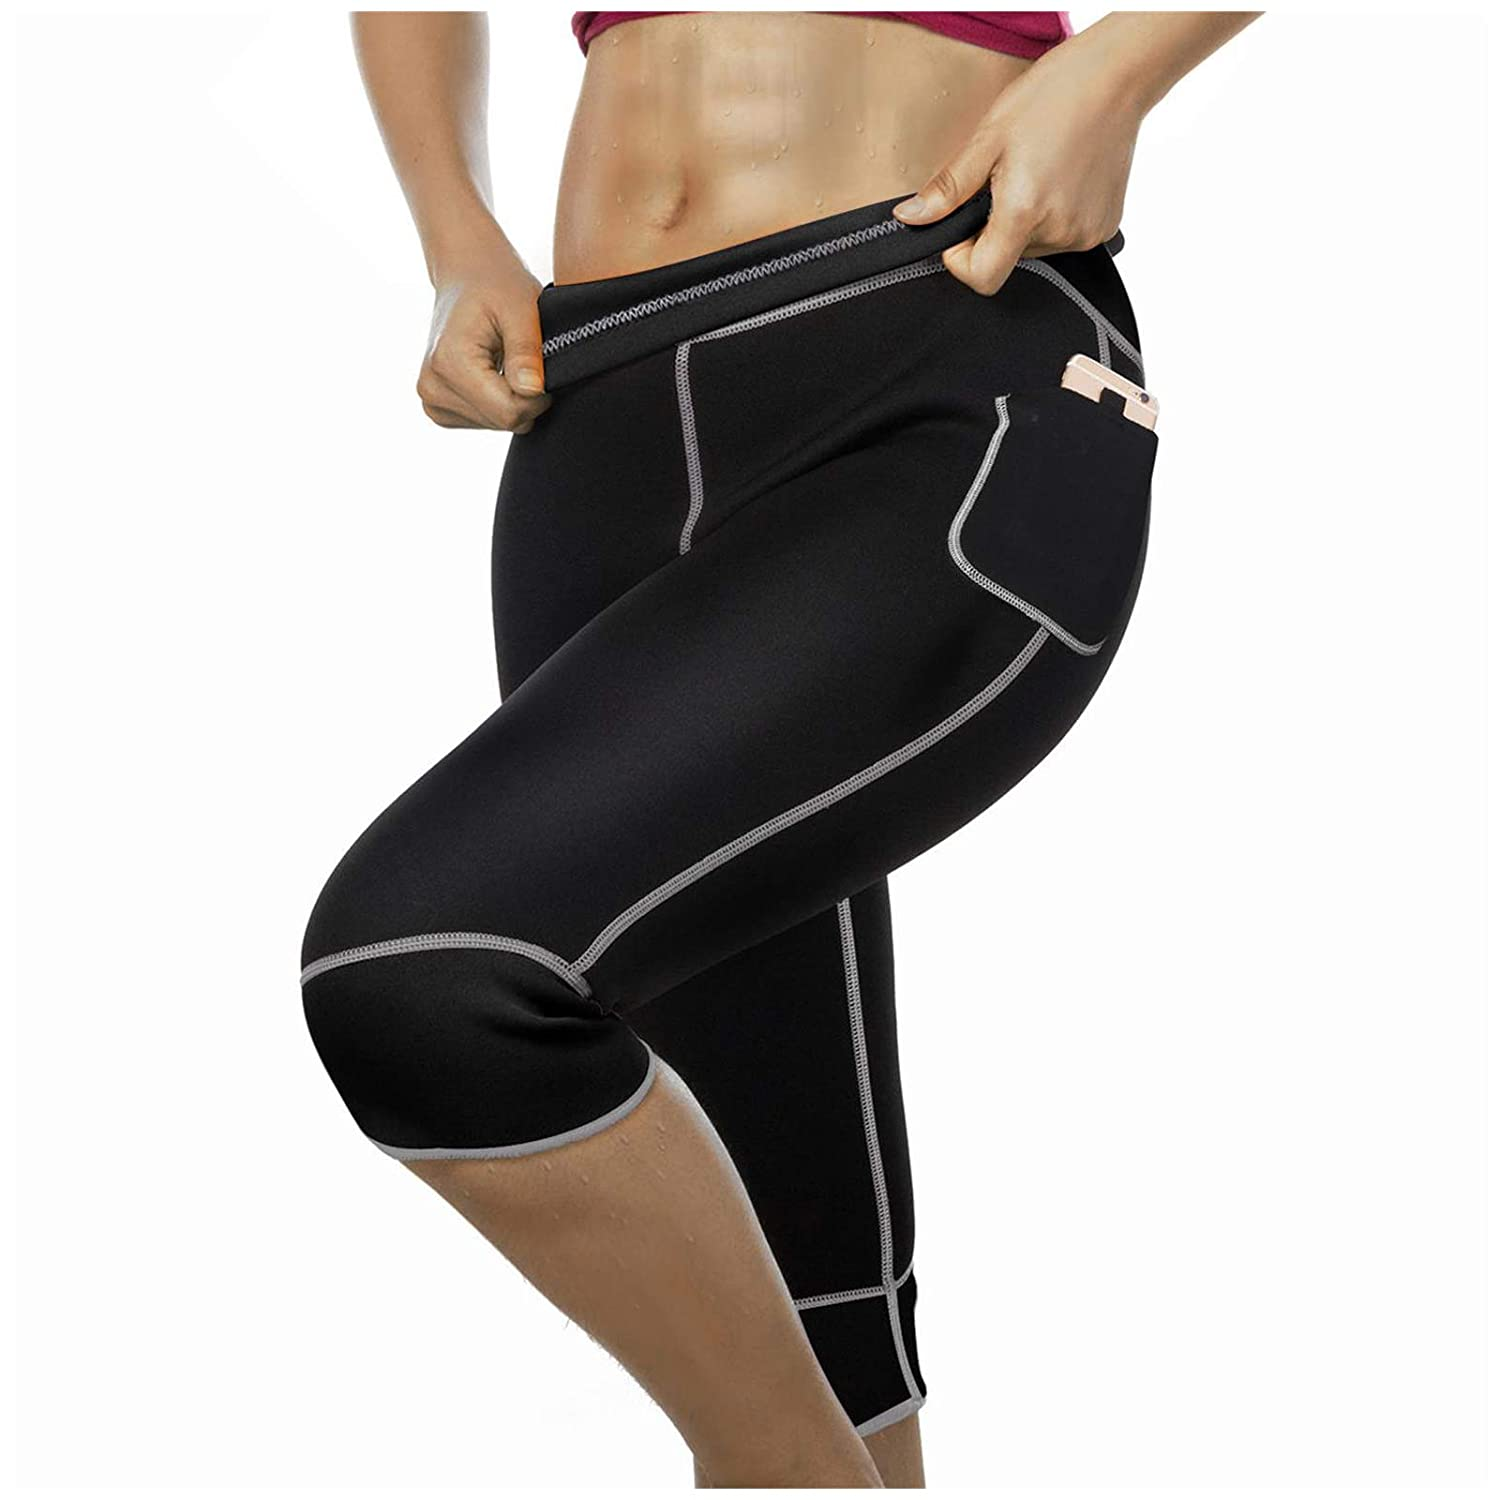 5c5988e3ee9890 Amazon.com  Women Weight Loss Hot Neoprene Sauna Sweat Pants with Side  Pocket Workout Thighs Slimming Capris Leggings Body Shaper  Clothing